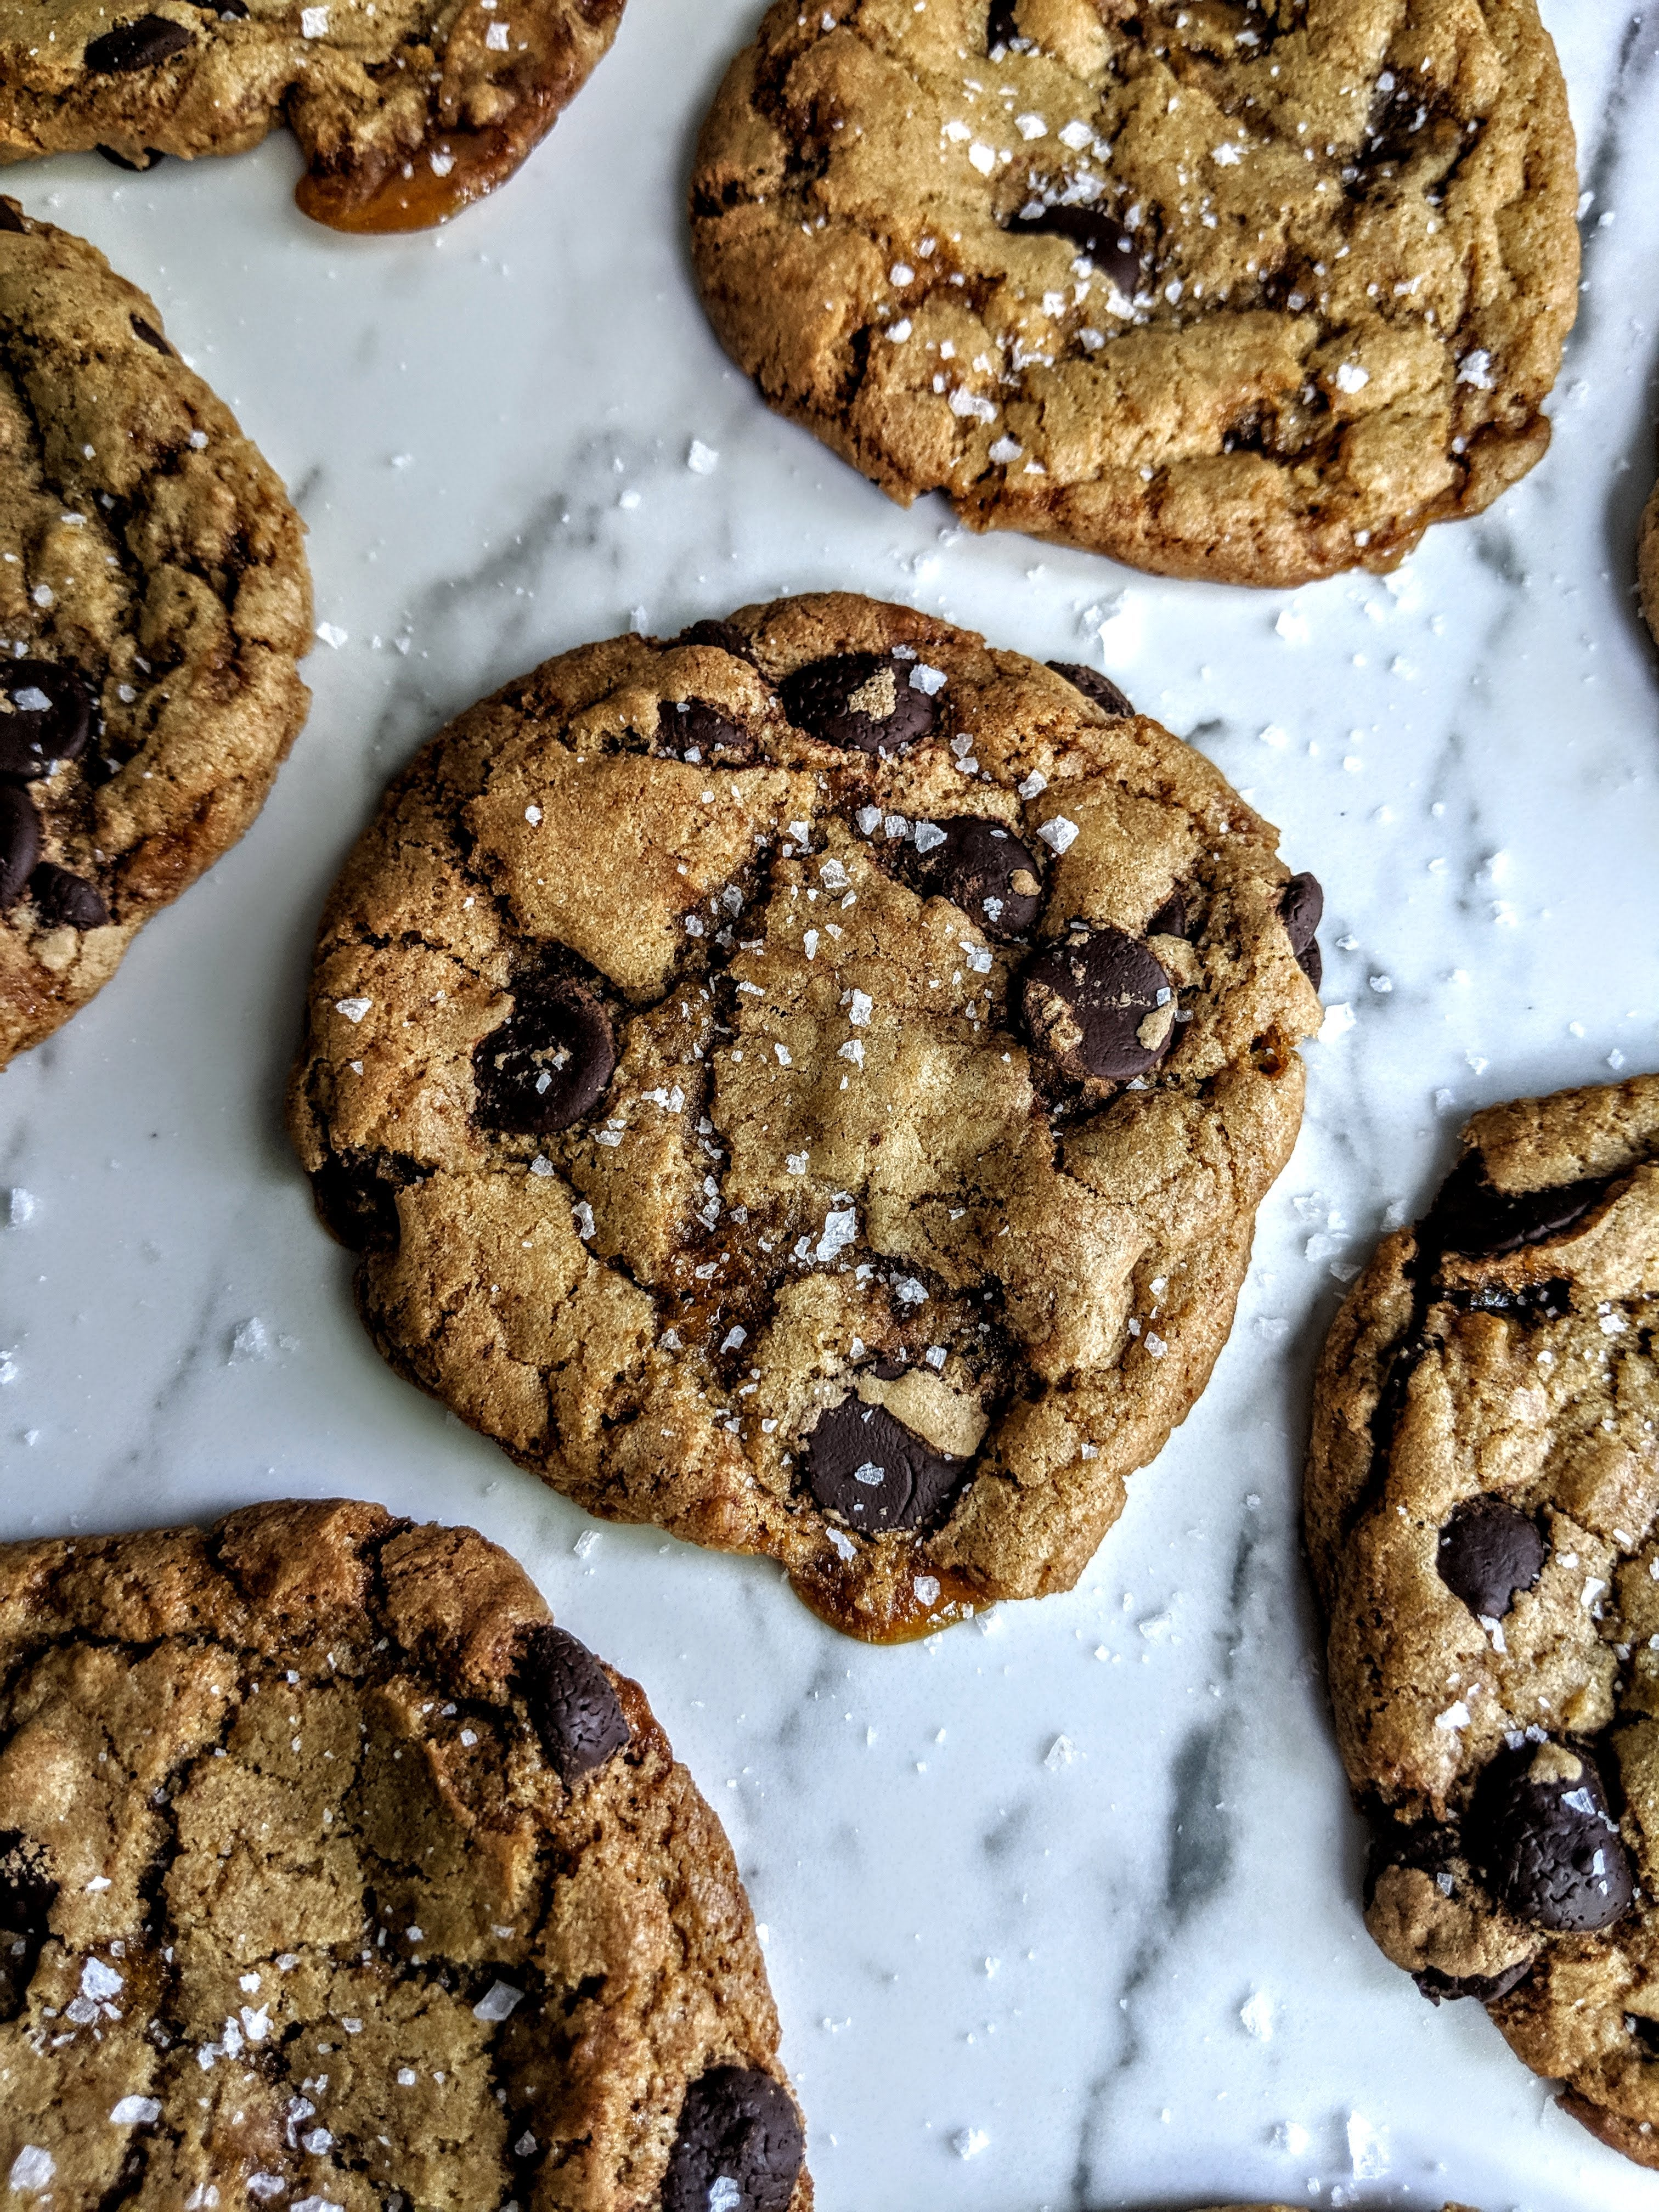 Brown-Buttered-Salted-Caramel-Chocolate-Chip-Cookies-(3).jpg